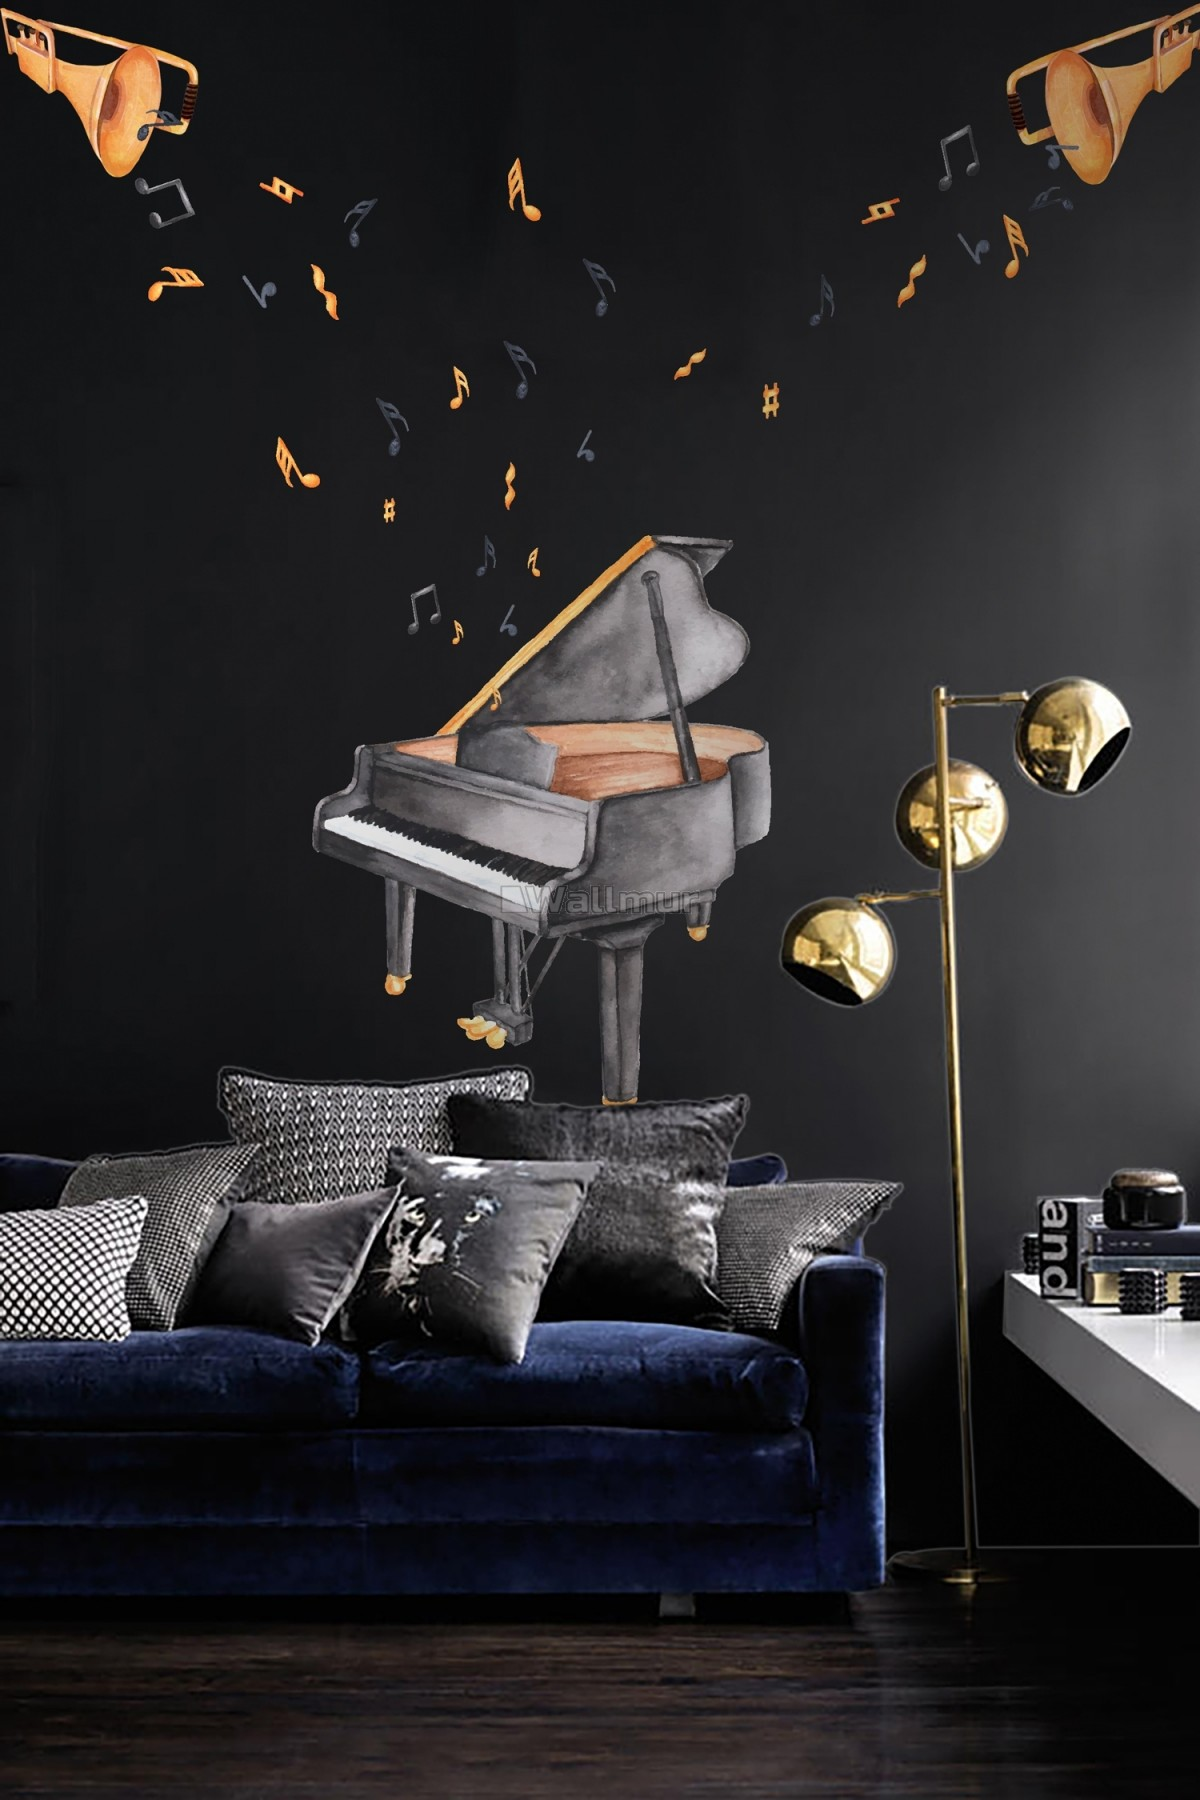 Watercolor Piano and Trumpet with Colorful Music Notes Wall Decal Sticker